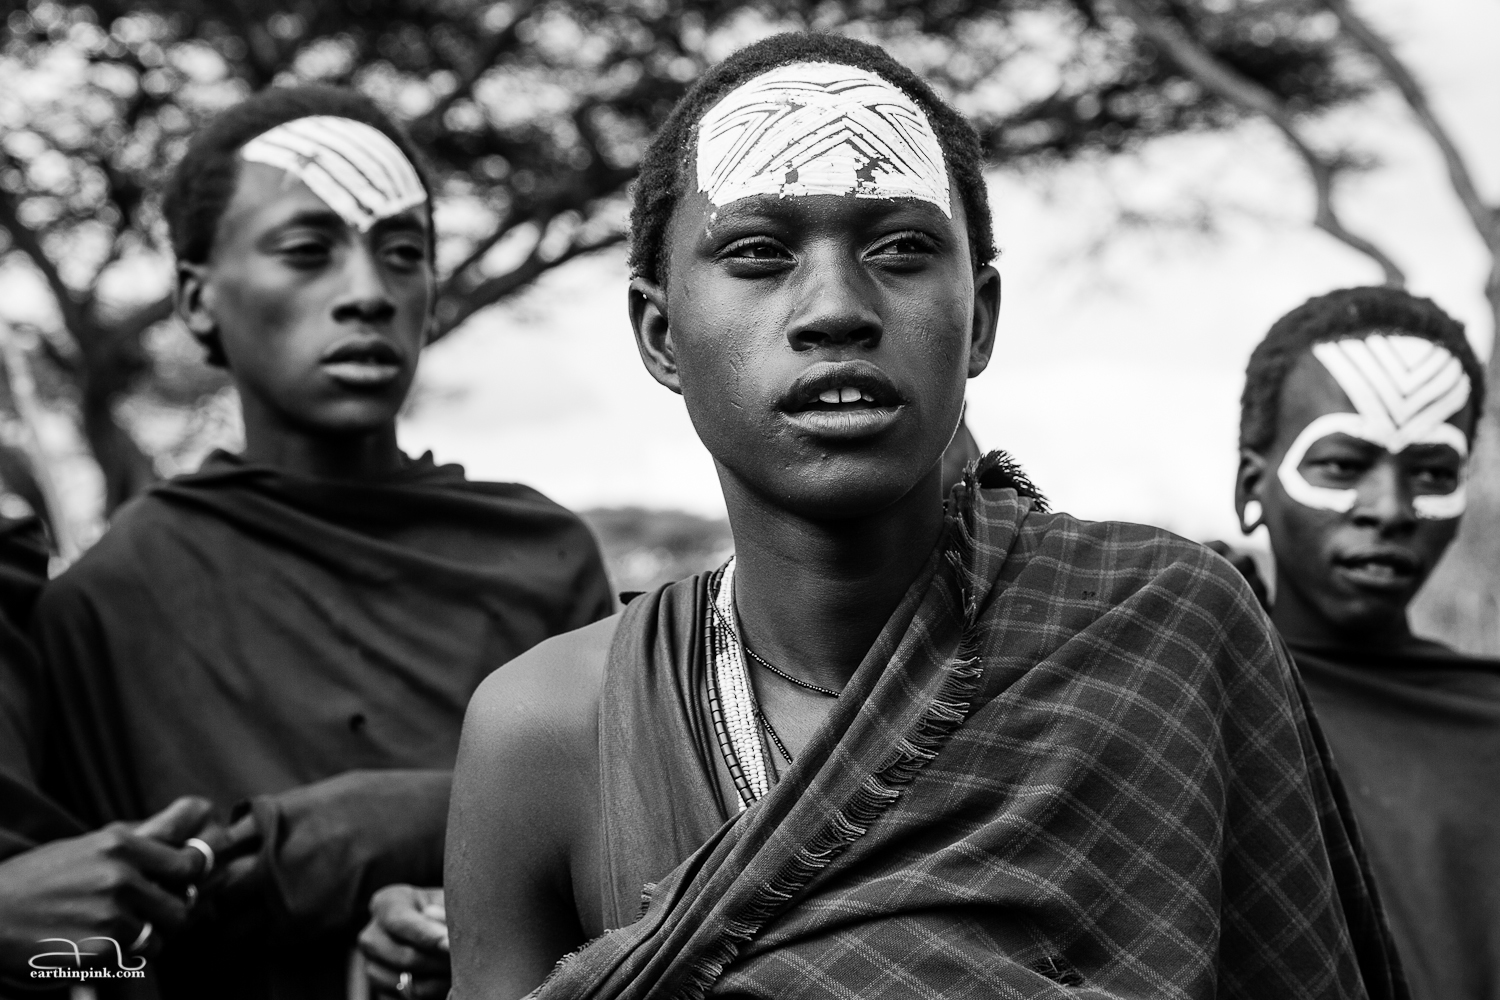 Maasai warriors-to-be near the Serengeti National Park, Tanzania